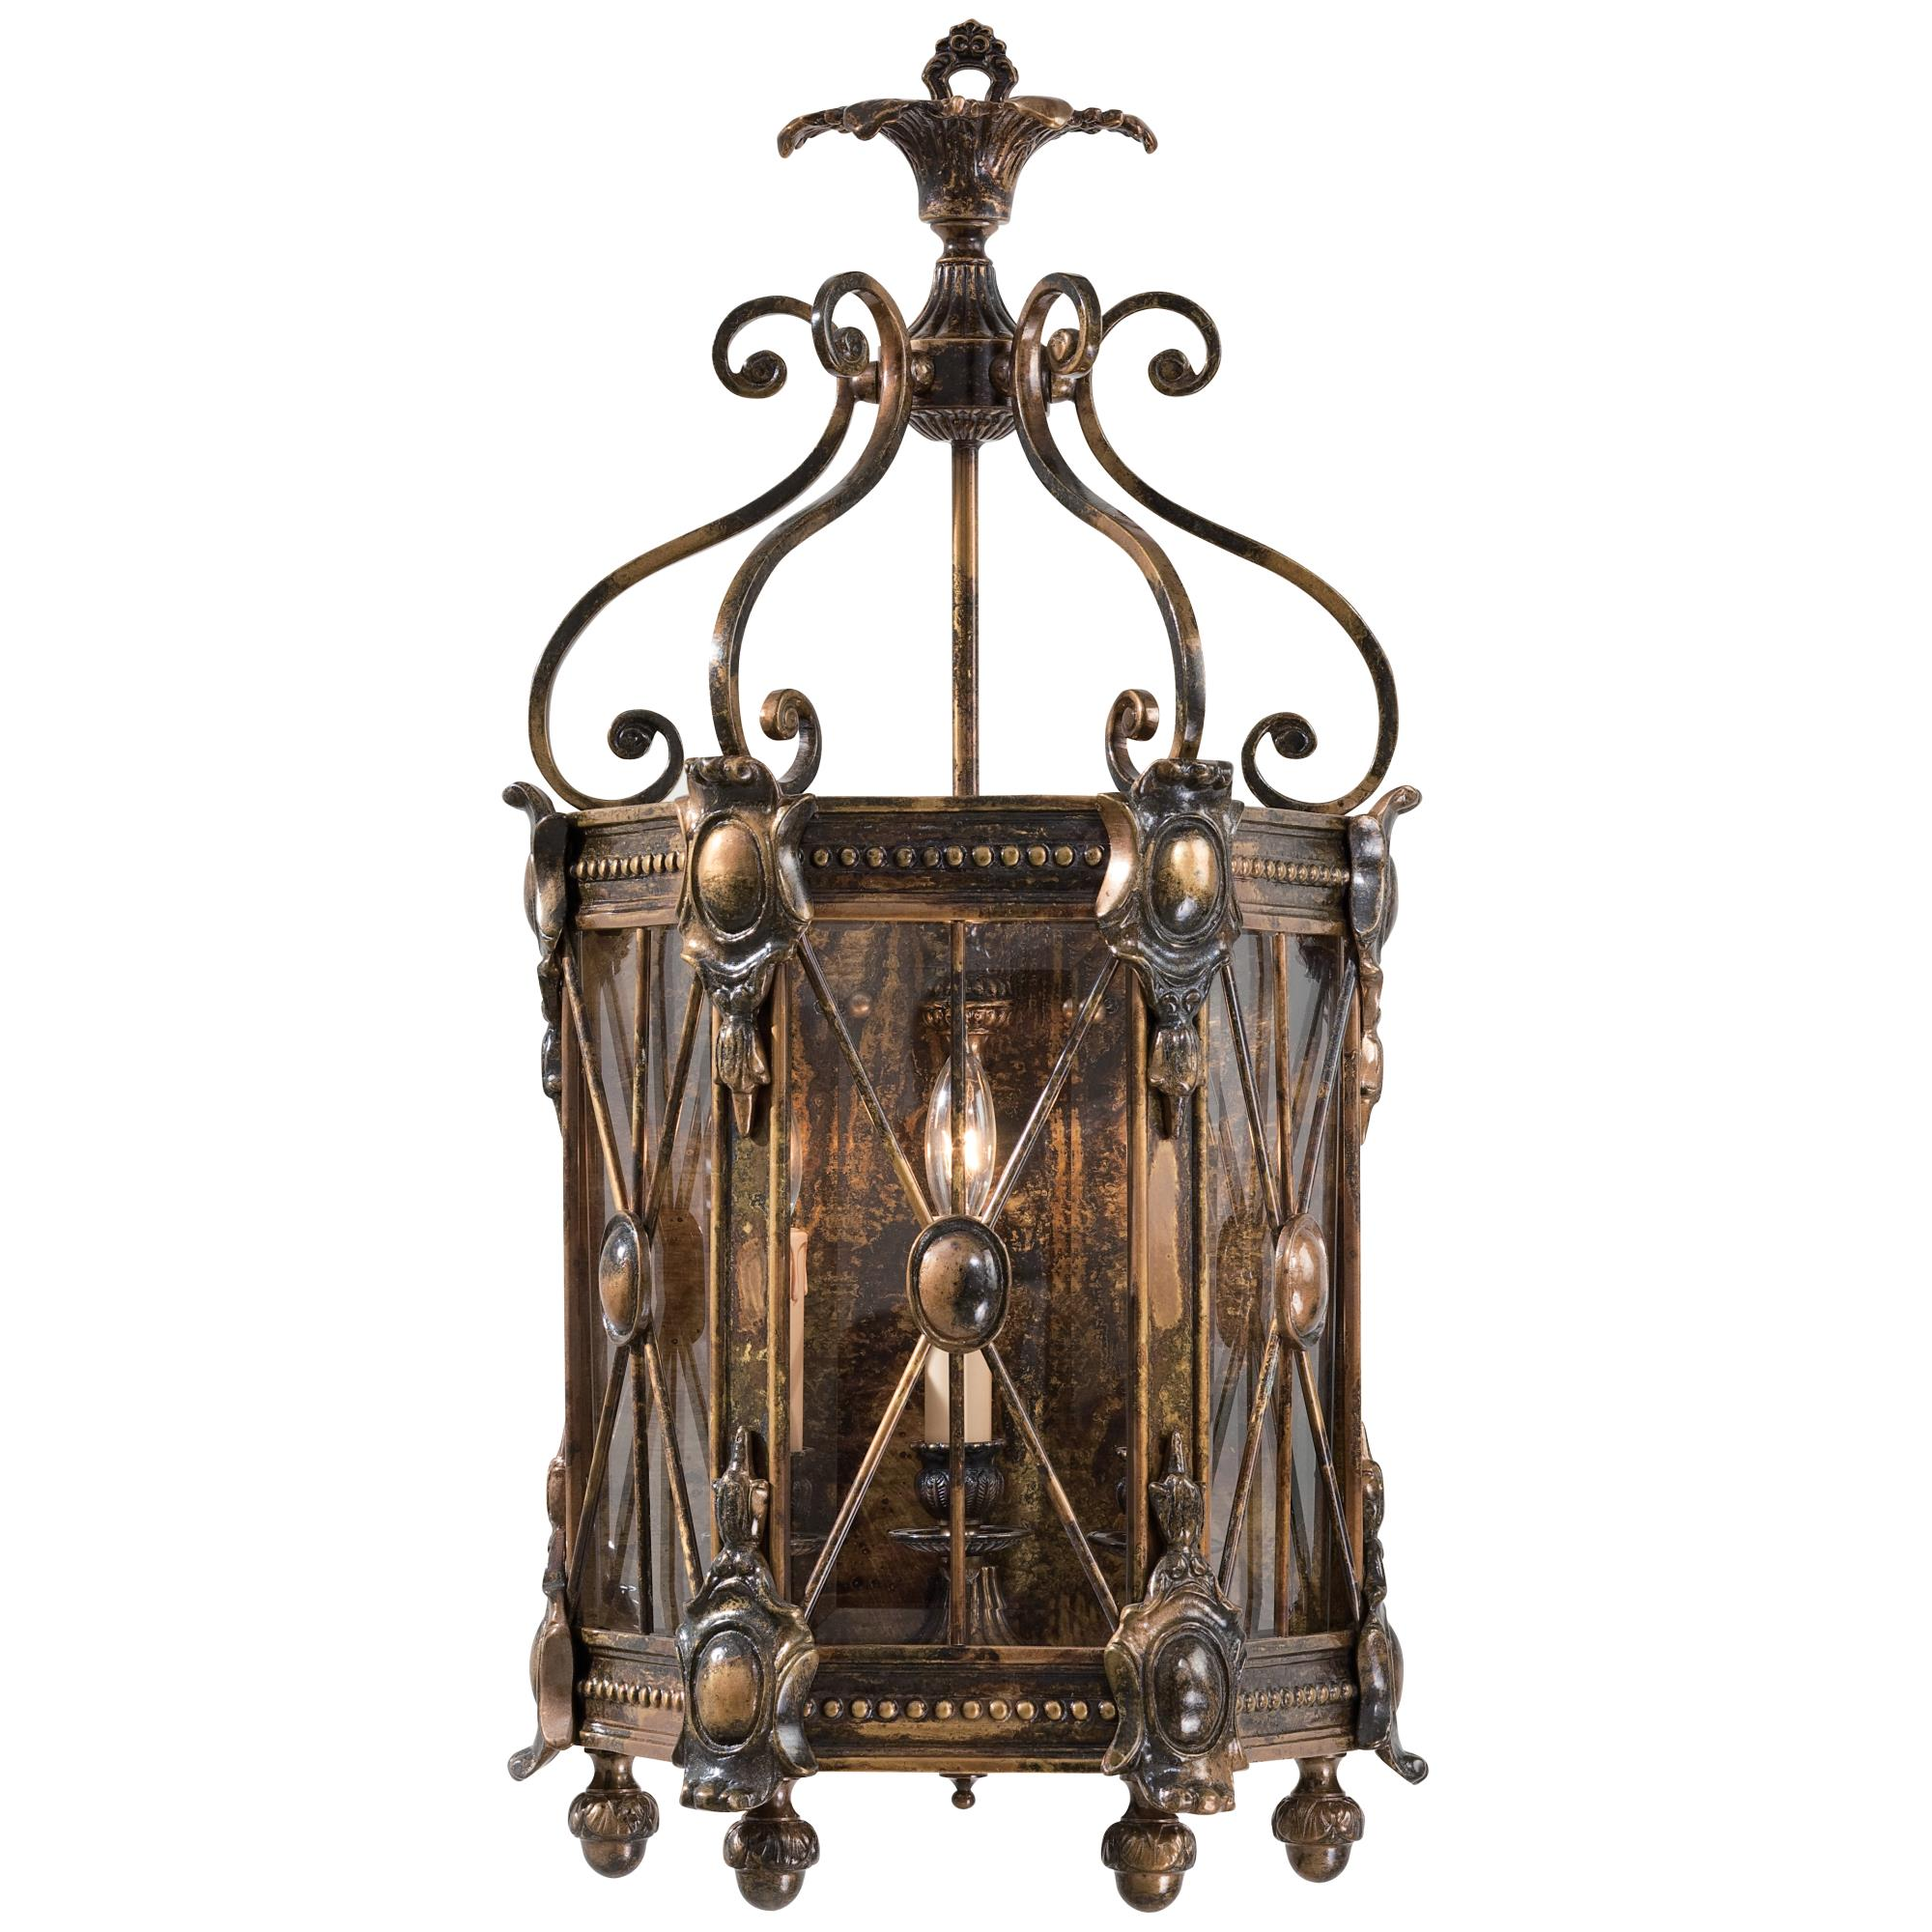 25 Inch Wall Sconce